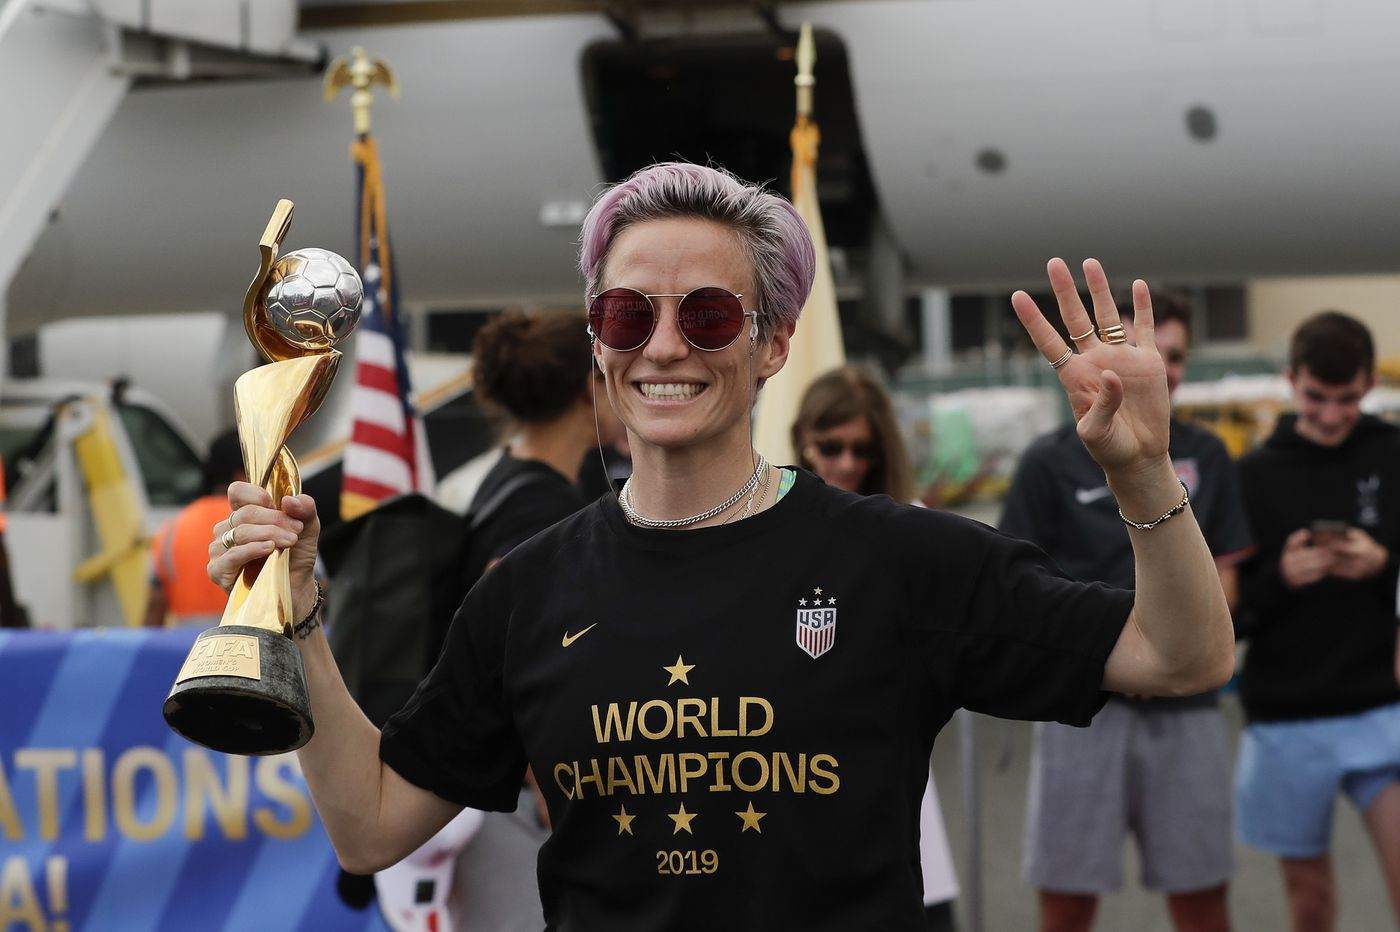 World Cup parade: Start time, route, how to watch and stream U.S. women's soccer team